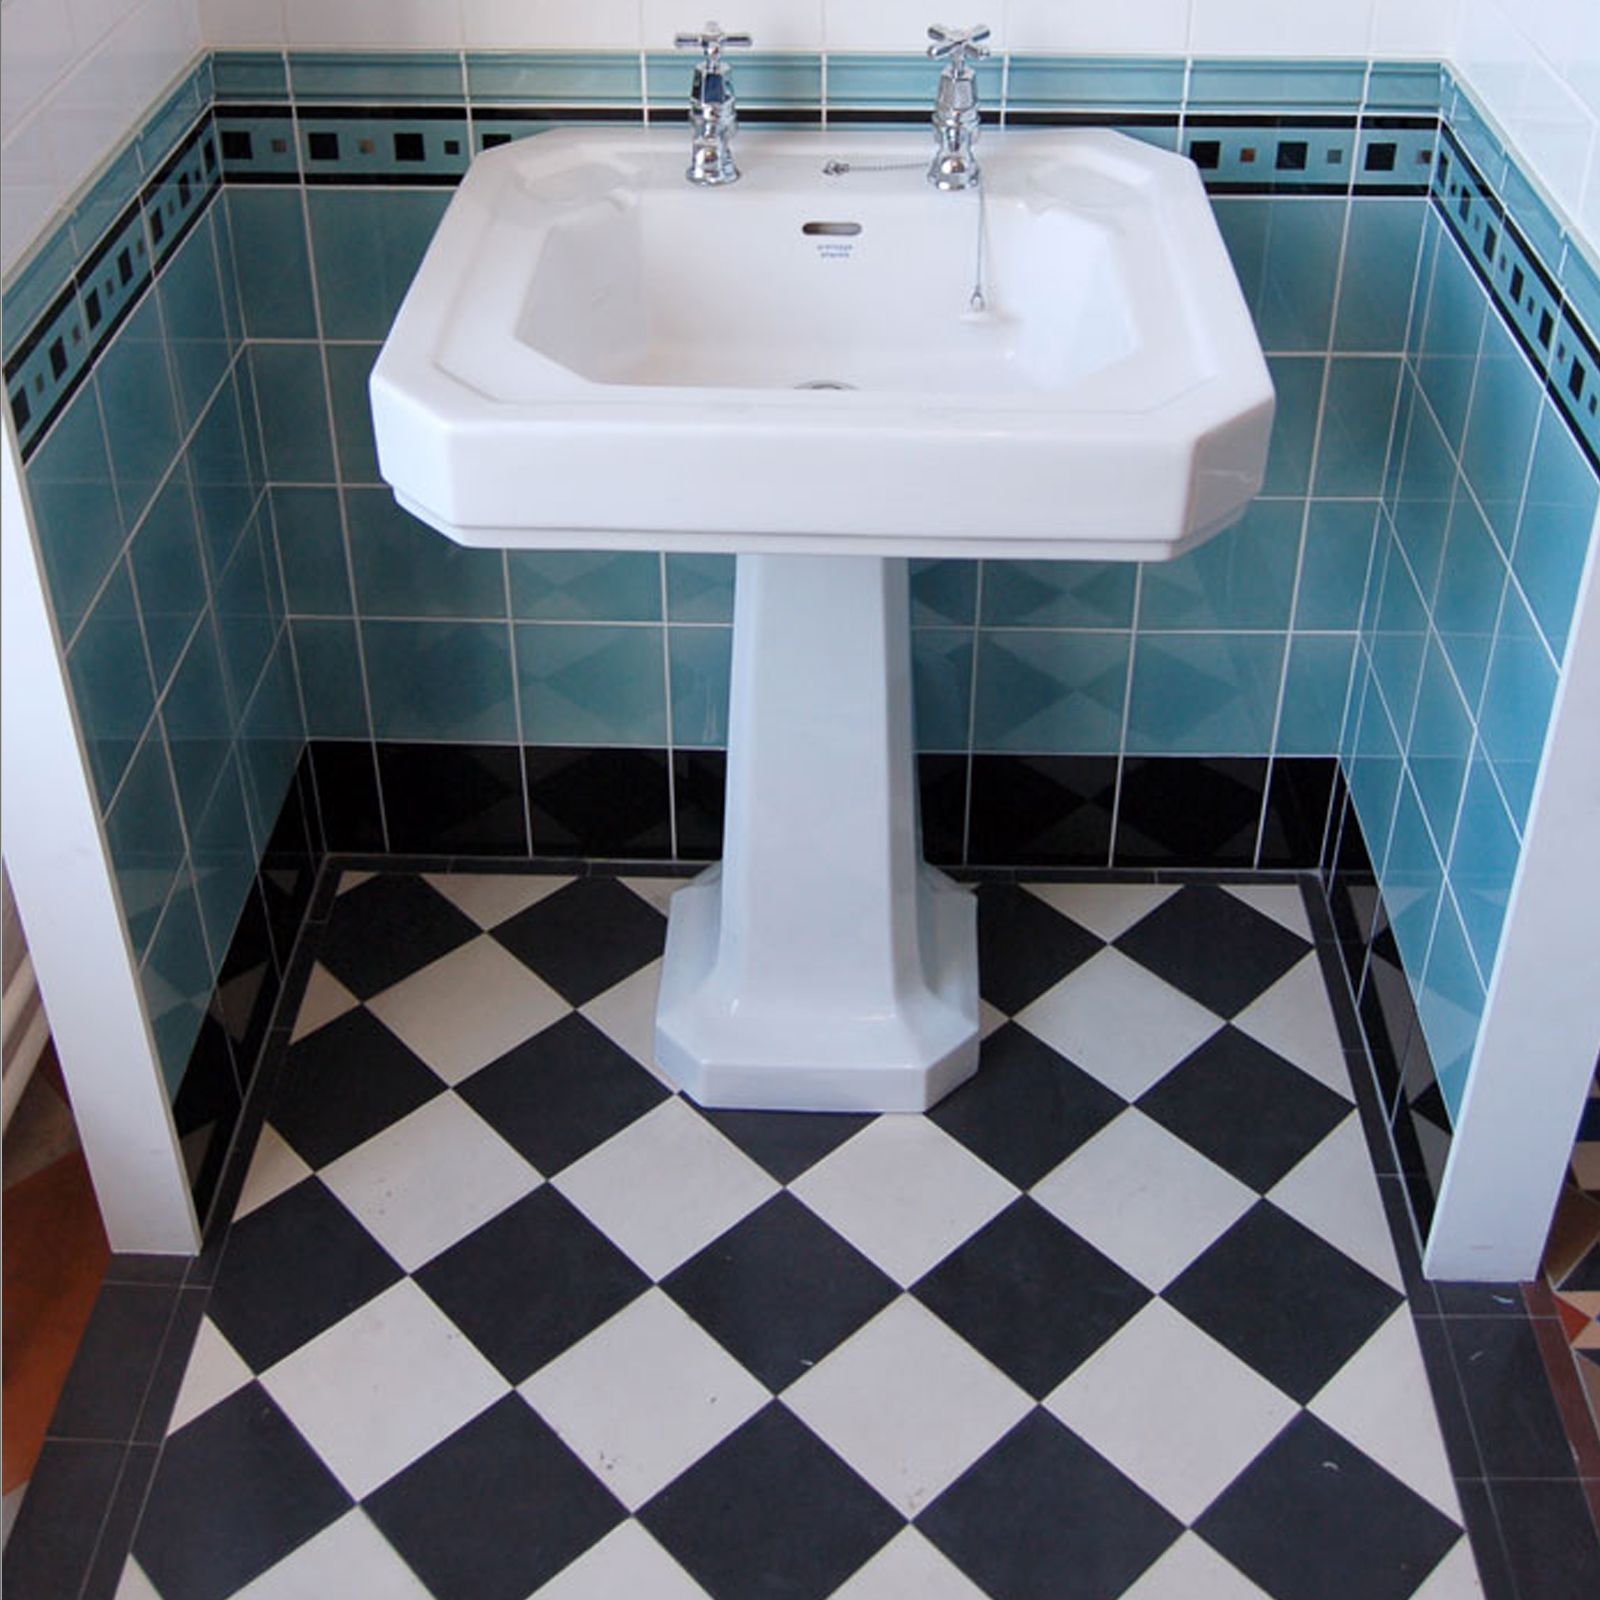 Coal Ford Mosaic Floor Tiles Inset Centre